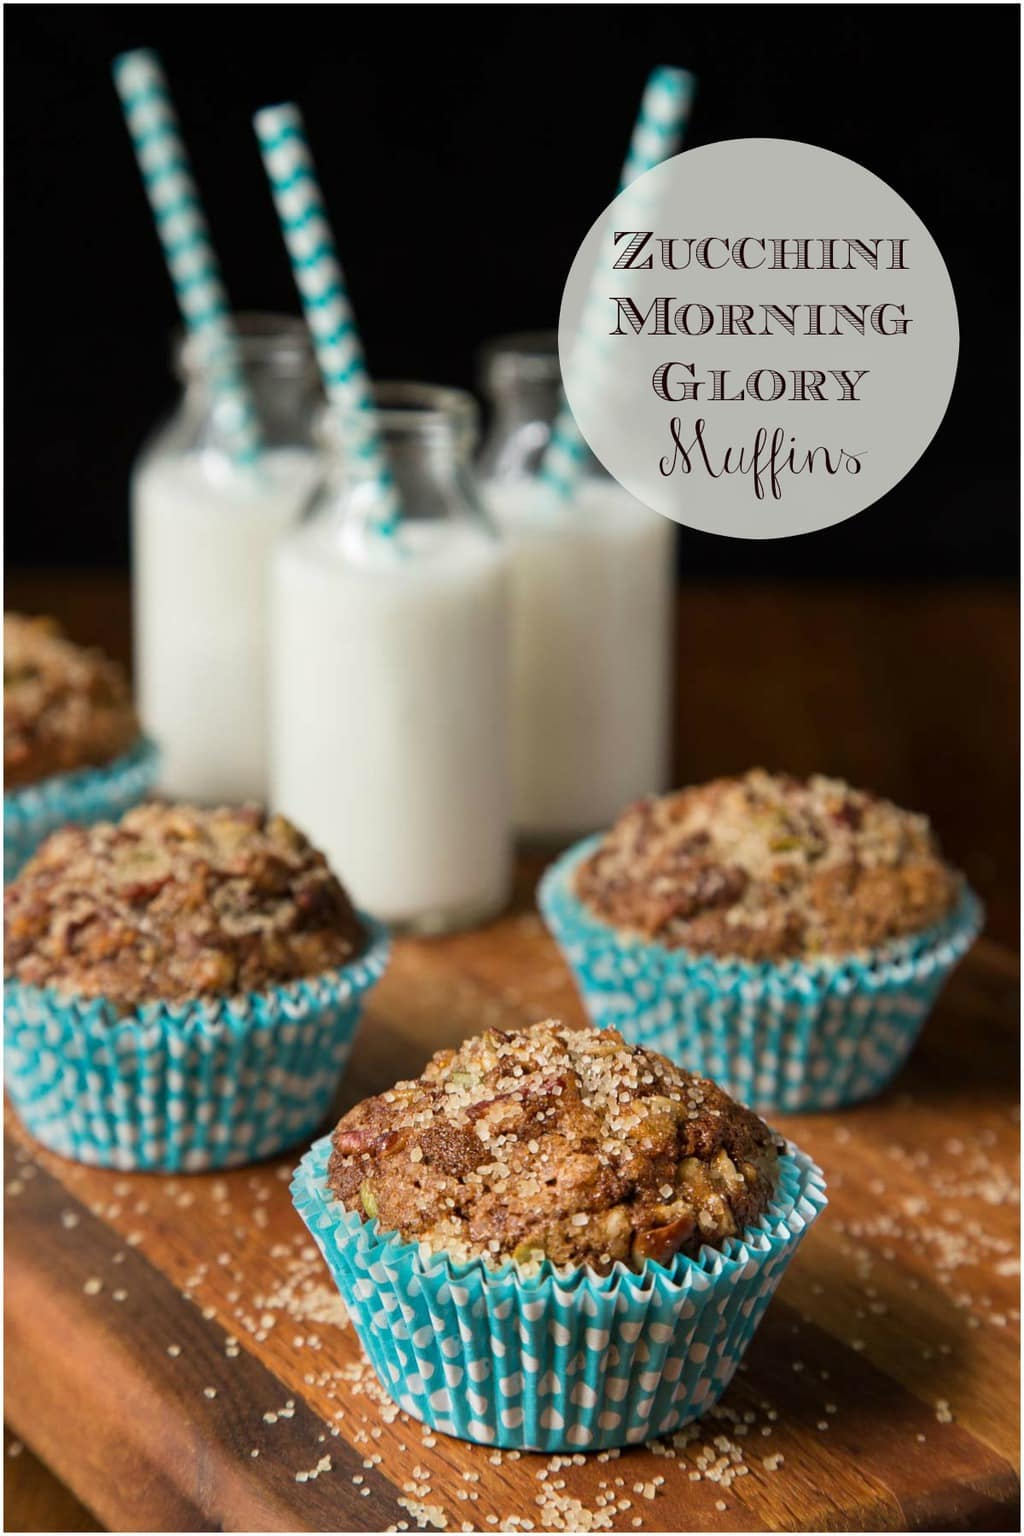 These Zucchini Morning Glory Muffins are healthy, moist, easy to throw together and super delicious! Perfect for breakfast, brunch and snacks! #morningglorymuffins, #easymuffins, #healthymuffins